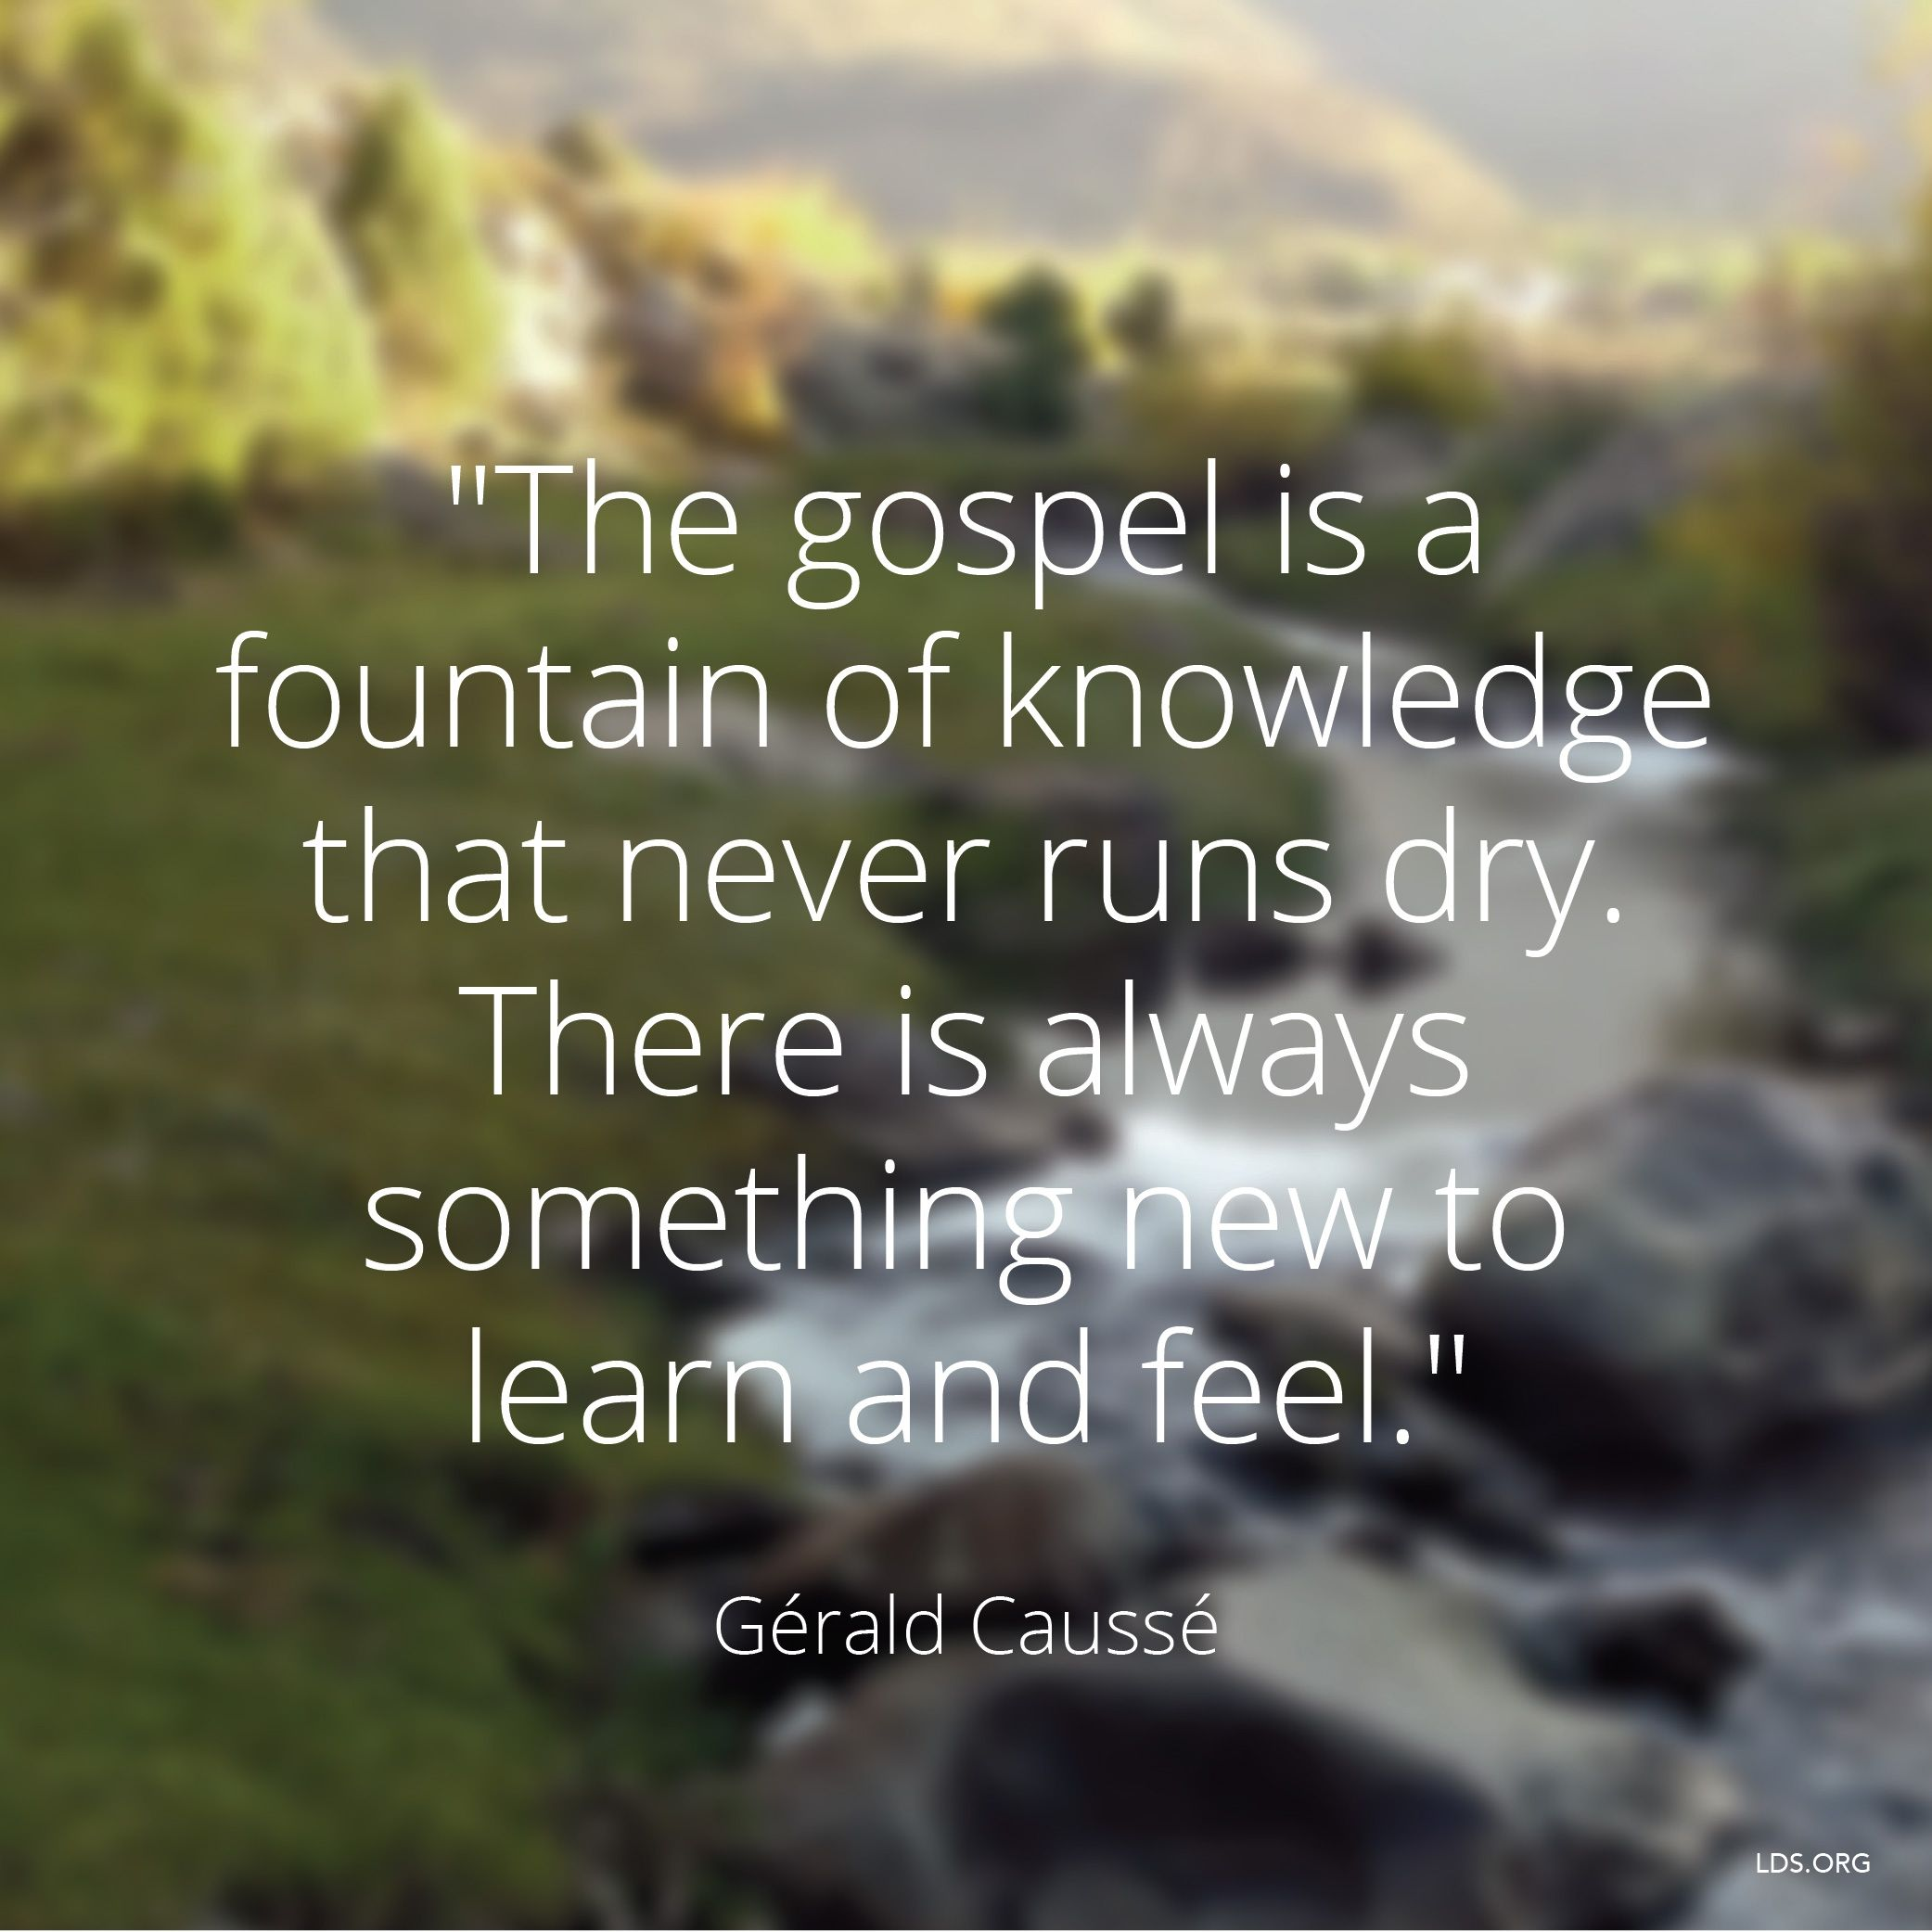 """""""The gospel is a fountain of knowledge that never runs dry. There is always something new to learn and feel.""""—Bishop Gérald Caussé, """"Is It Still Wonderful to You?"""""""